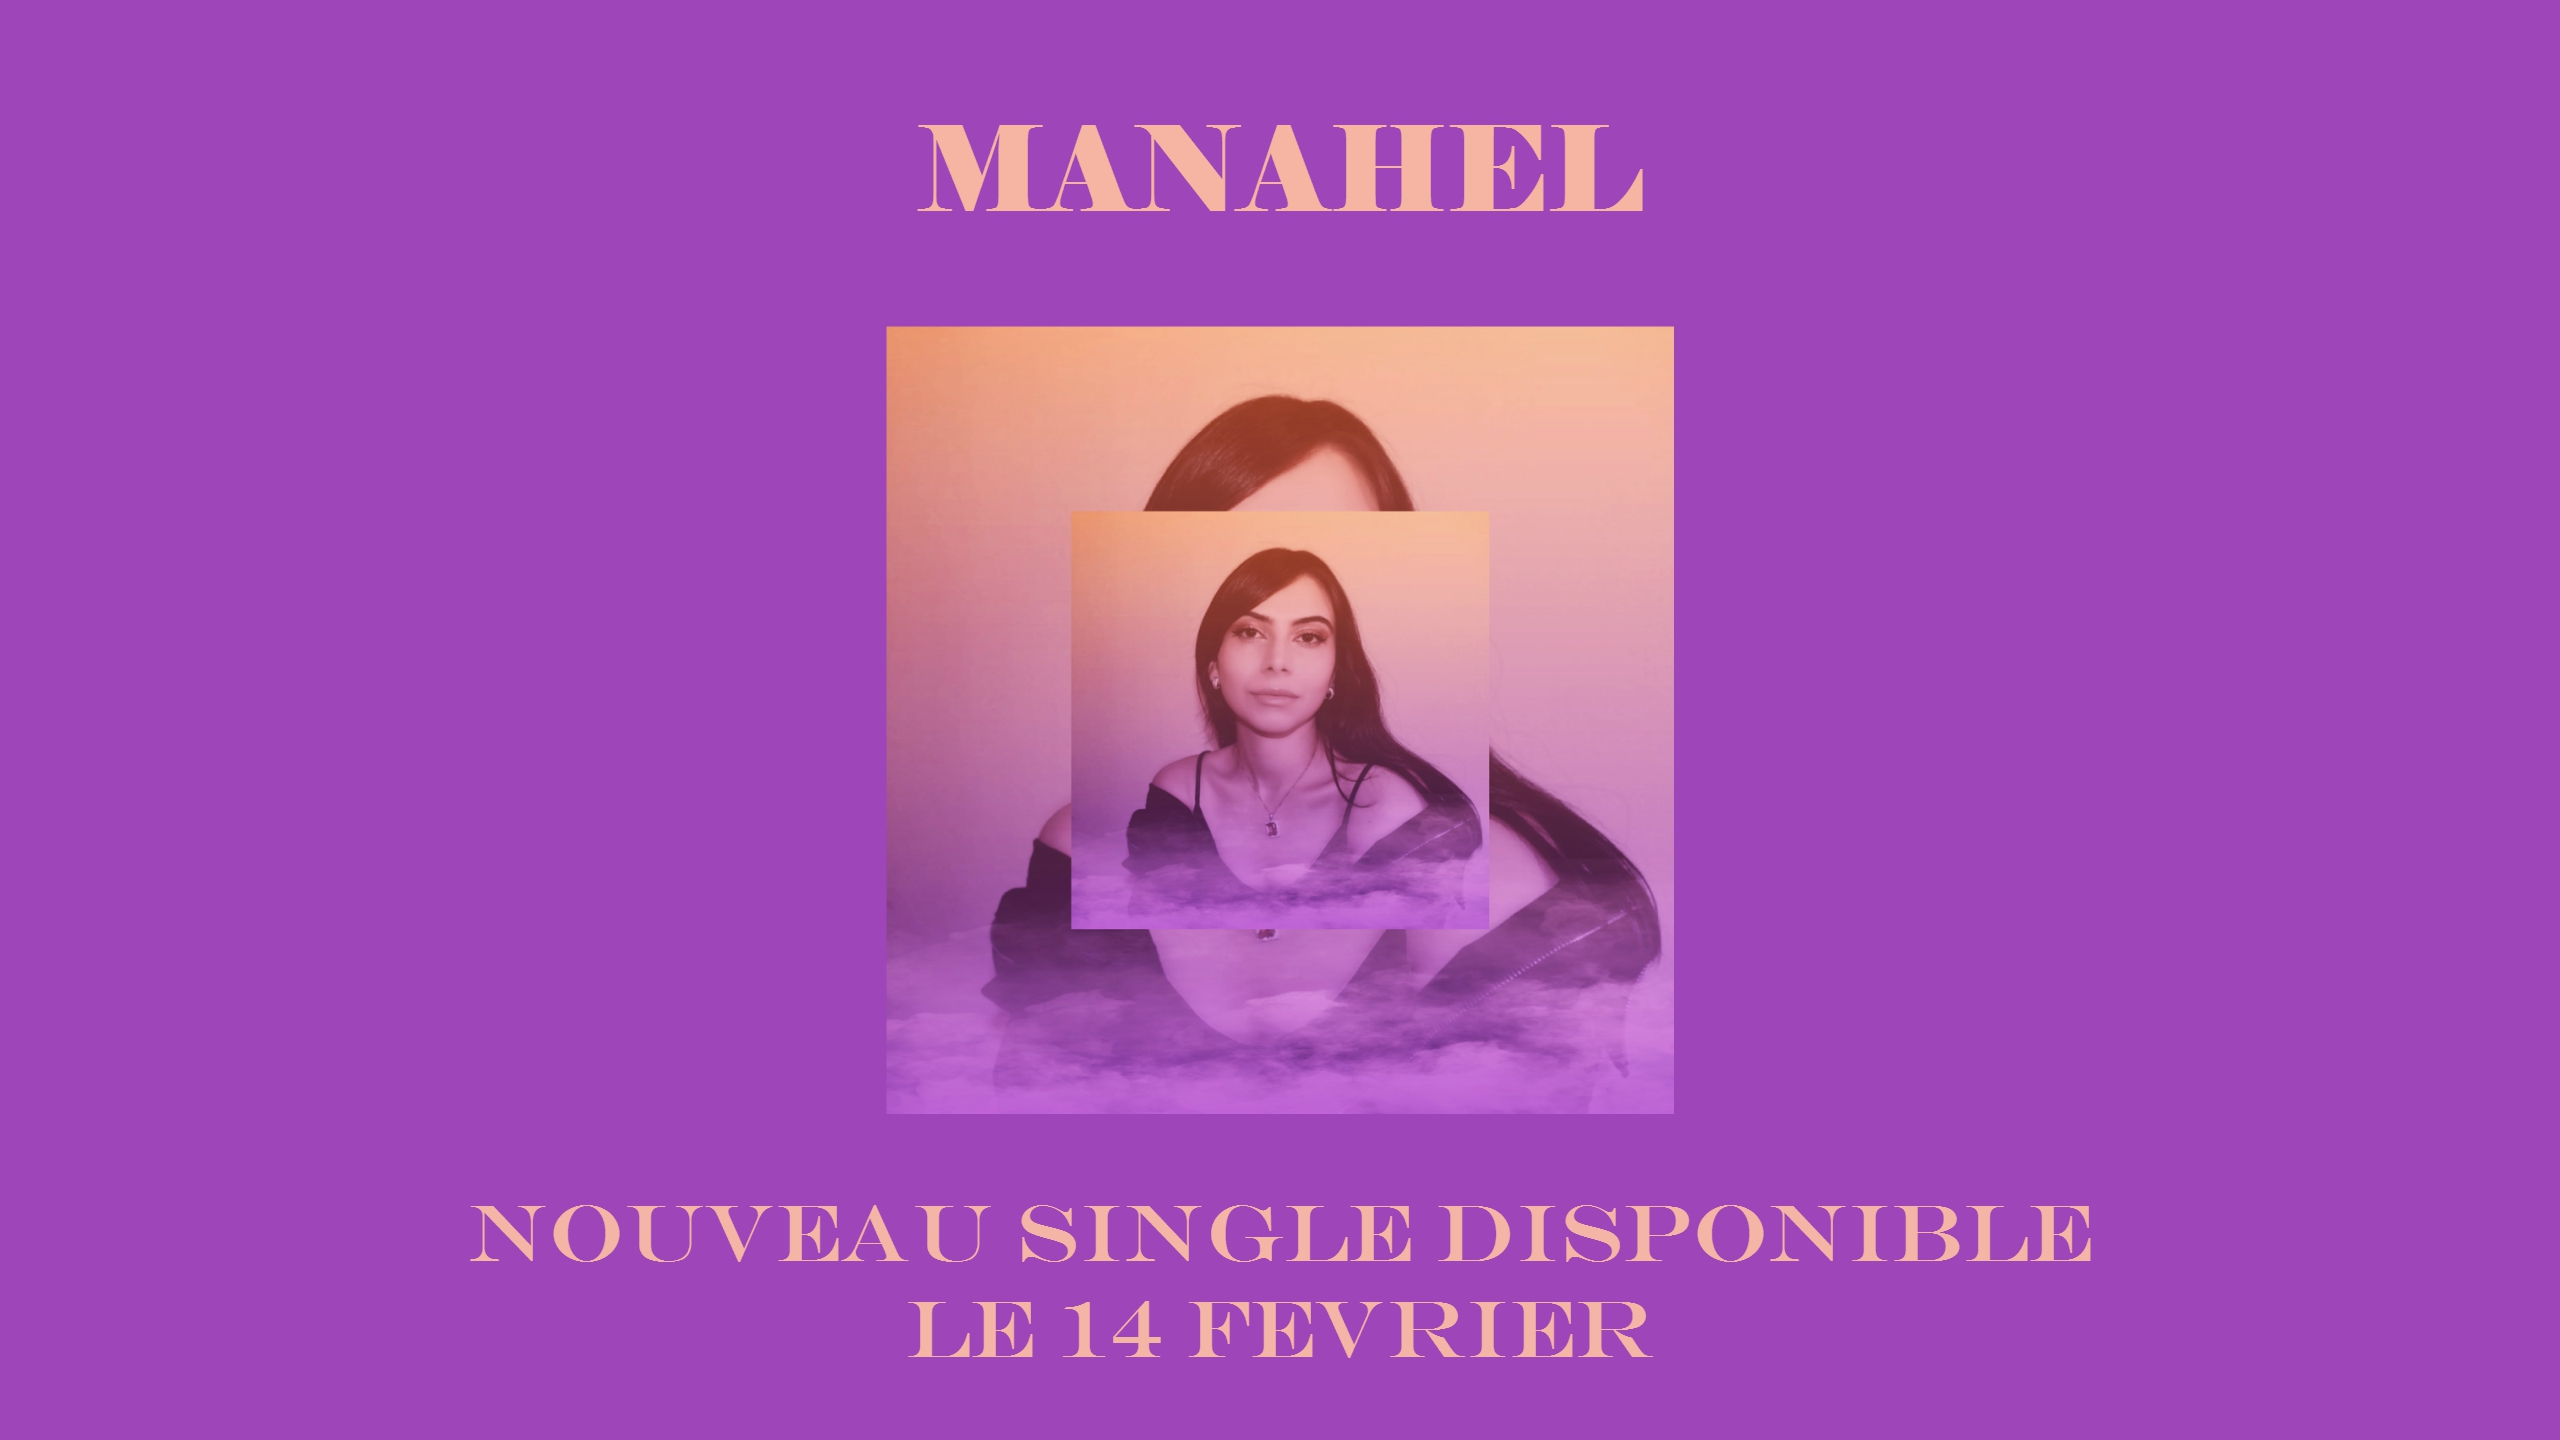 NOUVEAU SINGLE